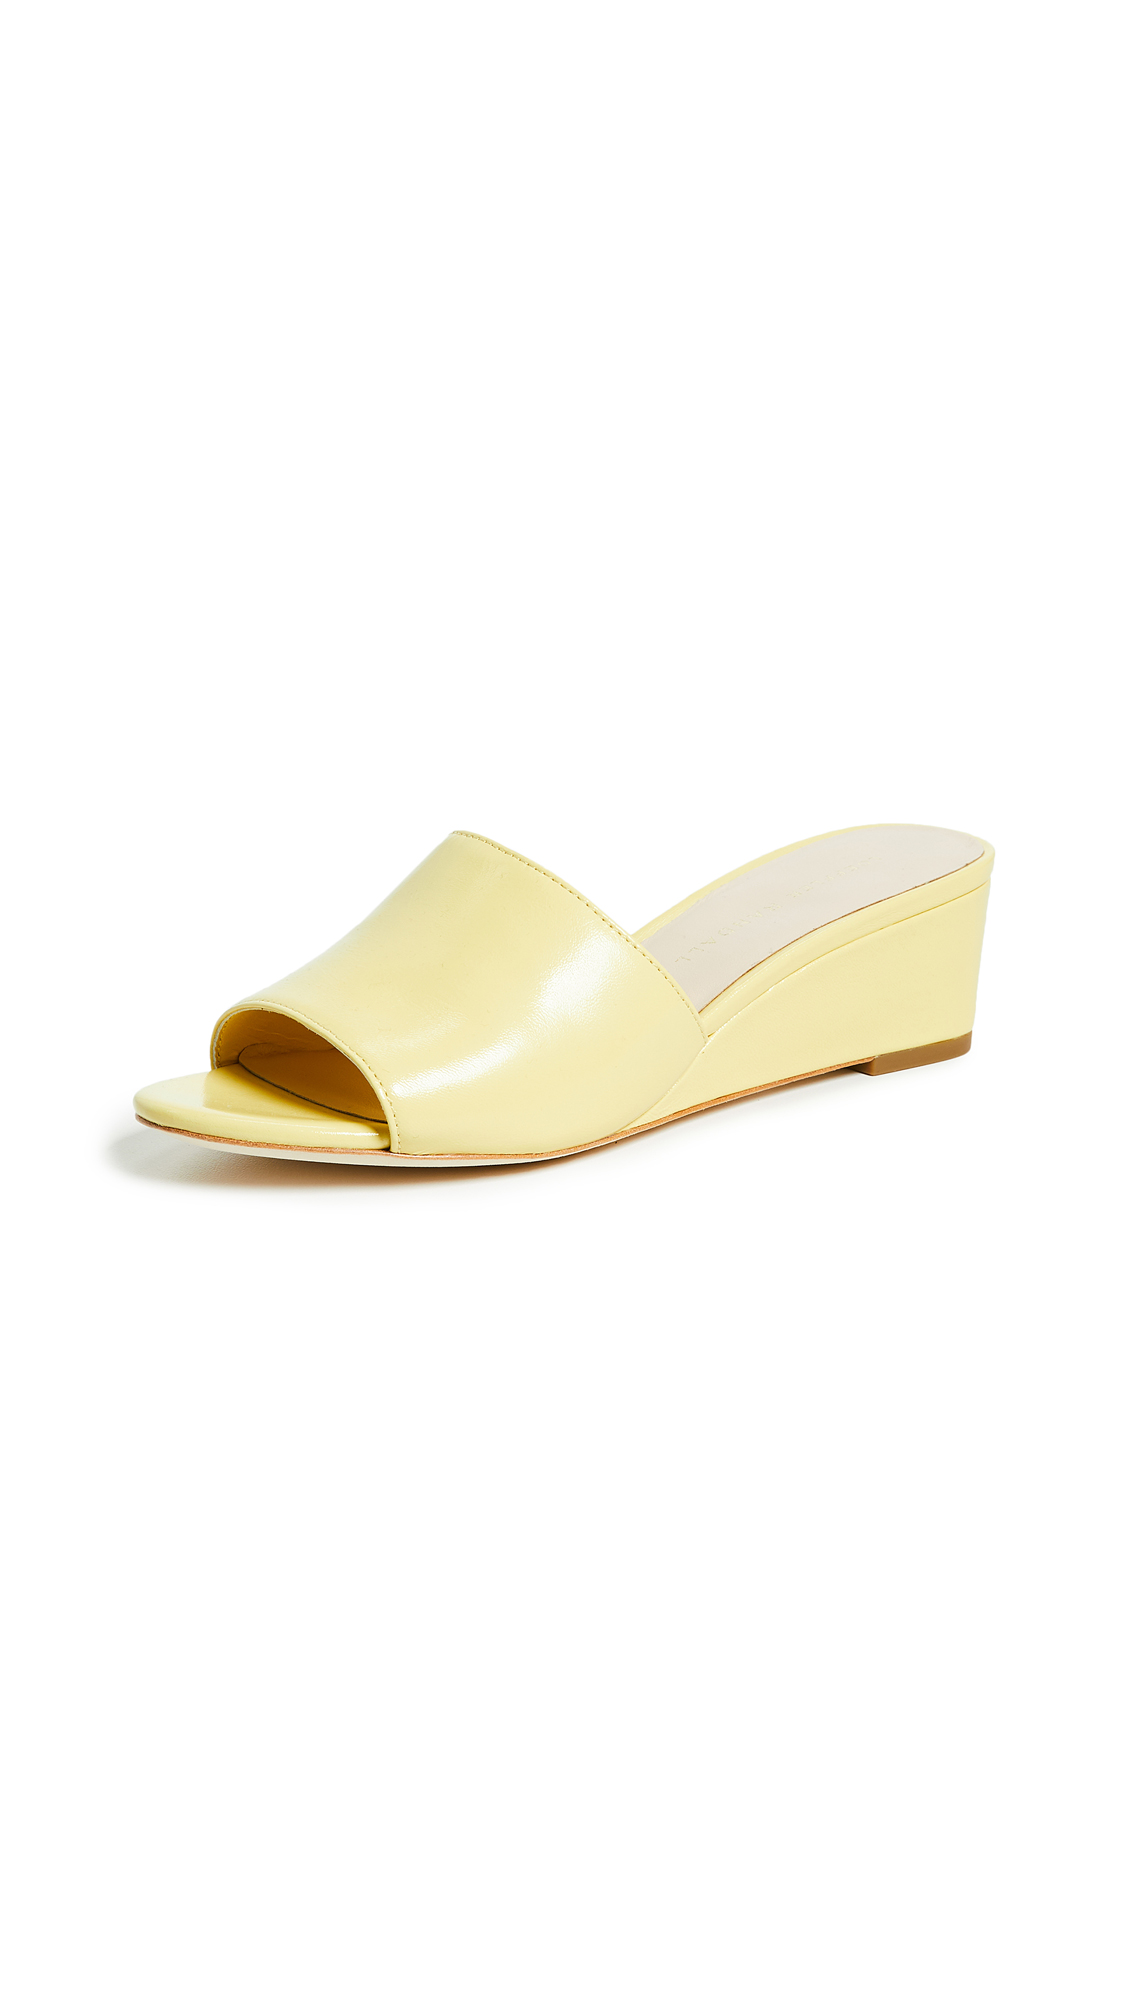 Loeffler Randall Tilly Demi Wedge Slides - Limoncello